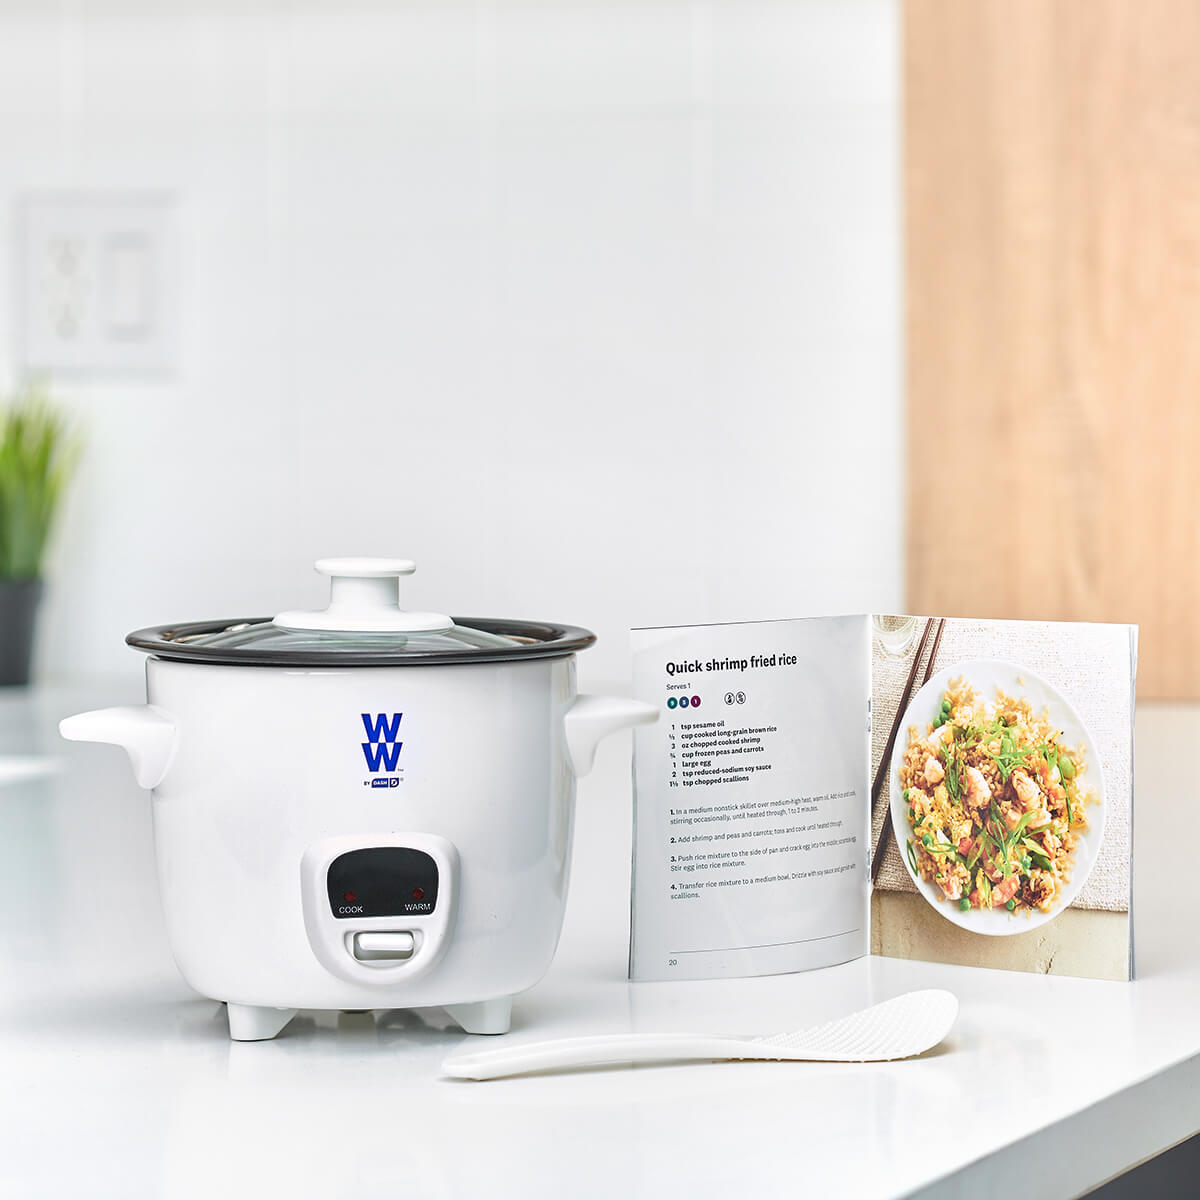 WW by Dash Mini Rice Cooker - lifestyle